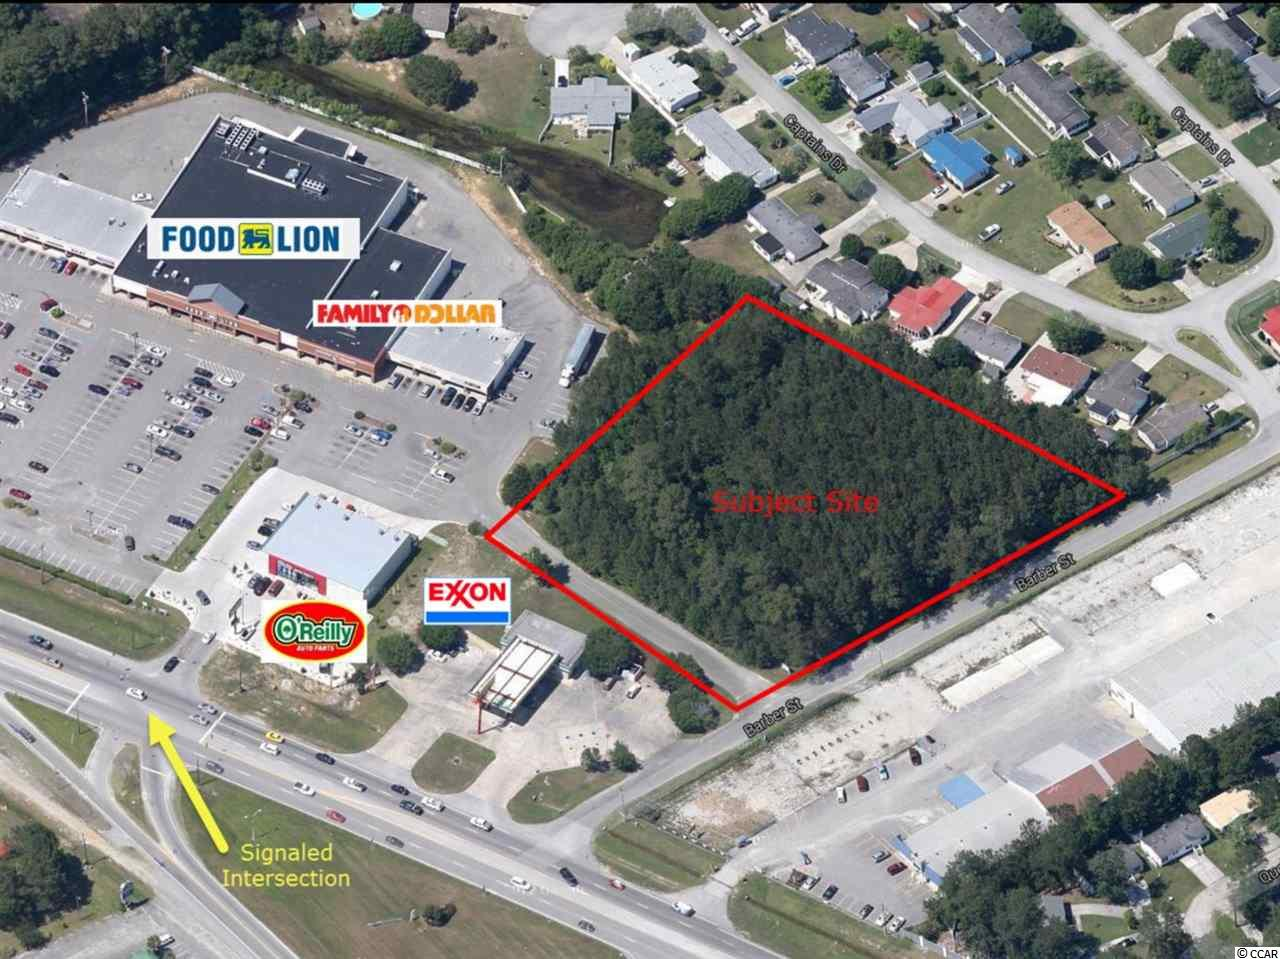 This 2.89 acre parcel is an out-parcel to the Food Lion Shopping Center. The site has access via Barber Street (County Road) directly from Highway 9 and via a signaled entrance into the shopping center. The site has good exposure to Highway 9. It has 405' of frontage on Barber Street and 267' on a private access easement across the front of the property as well as curb cuts to the Food Lion Shopping Center.  Located just off the signalized intersection of Highway 9 and Sea Mountain Highway.   Average Daily Traffic Count 26,500.   It's zoned highway commercial.    Great for building a strip center, mini storage, car wash, medical office.   Many possibilities, see associated documents for deed restrictions.  Bridgewater is the newest subdivision in the area. Formerly, Bay Tree Golf Course.      McLeod Hospital recently did a multi-million dollar expansion and upgrade to the facility.